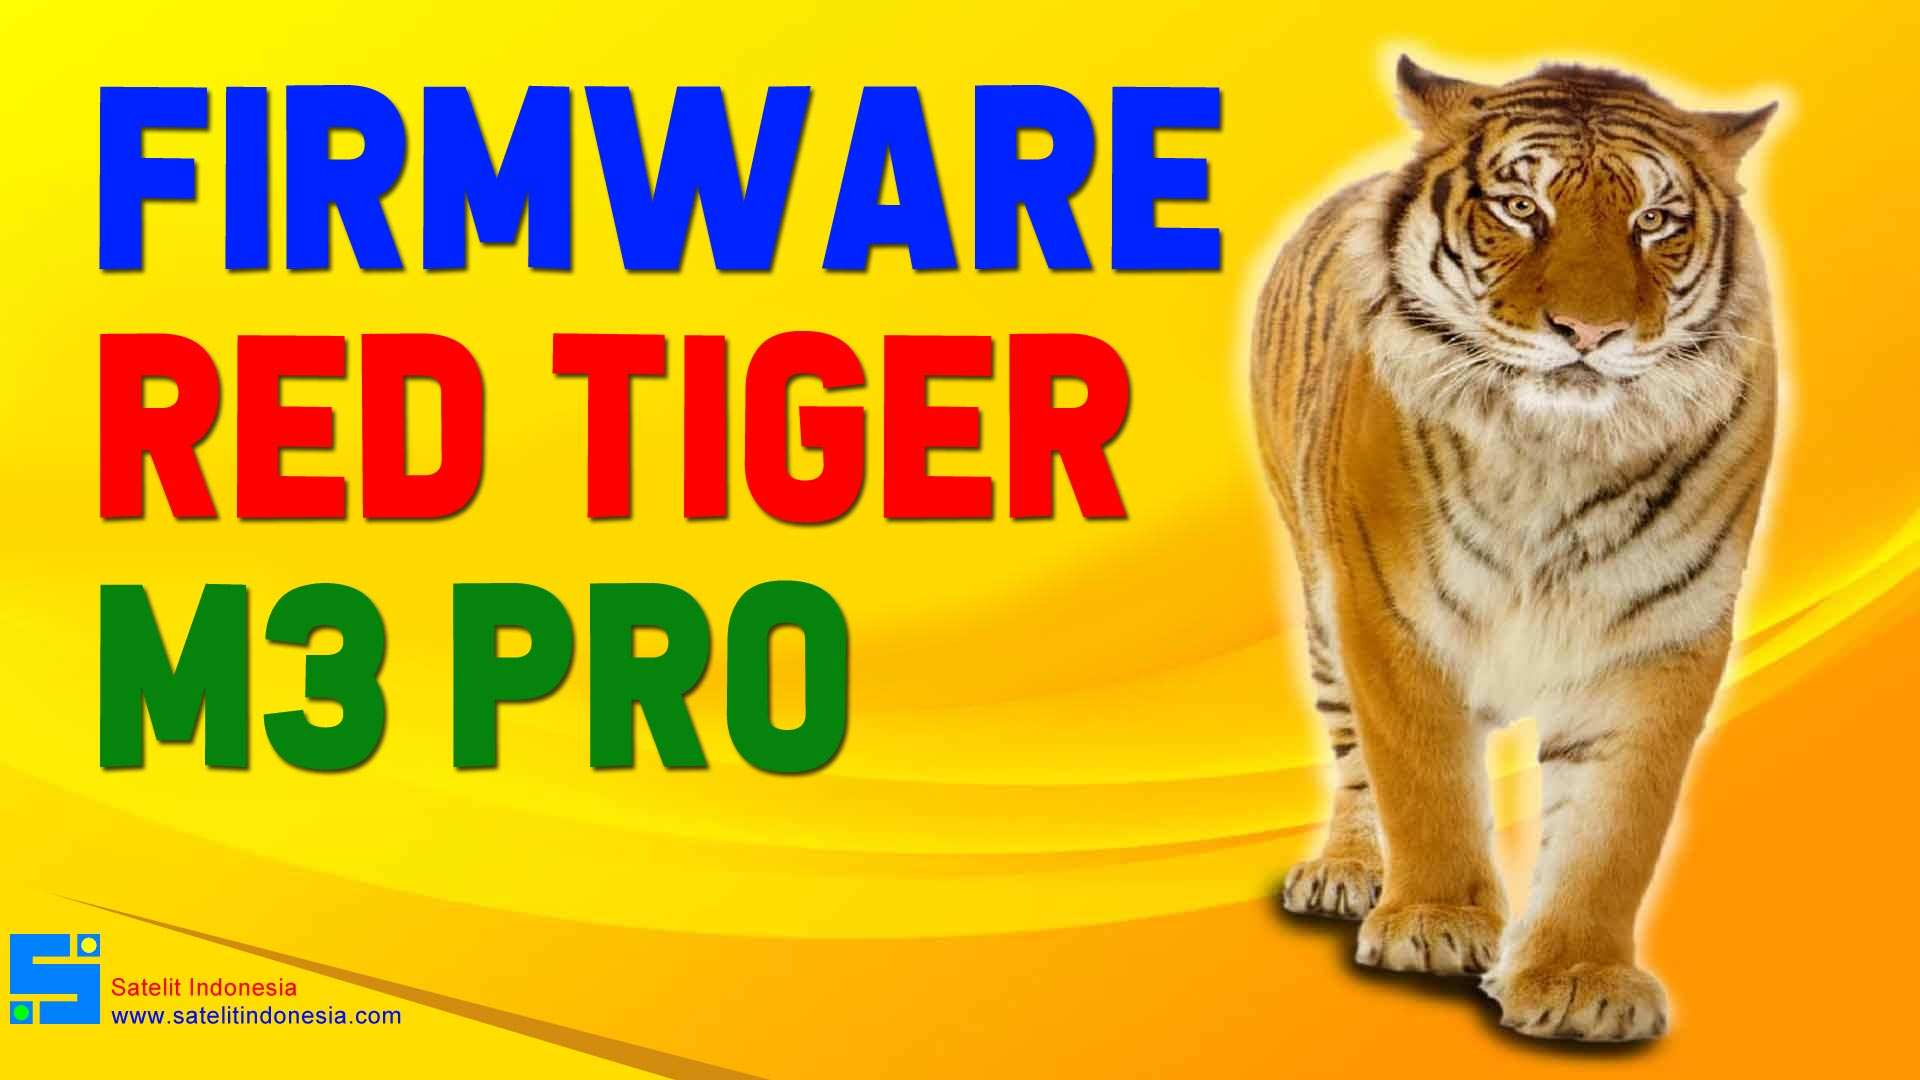 Download Software Red Tiger M3 Pro Update Firmware Receiver